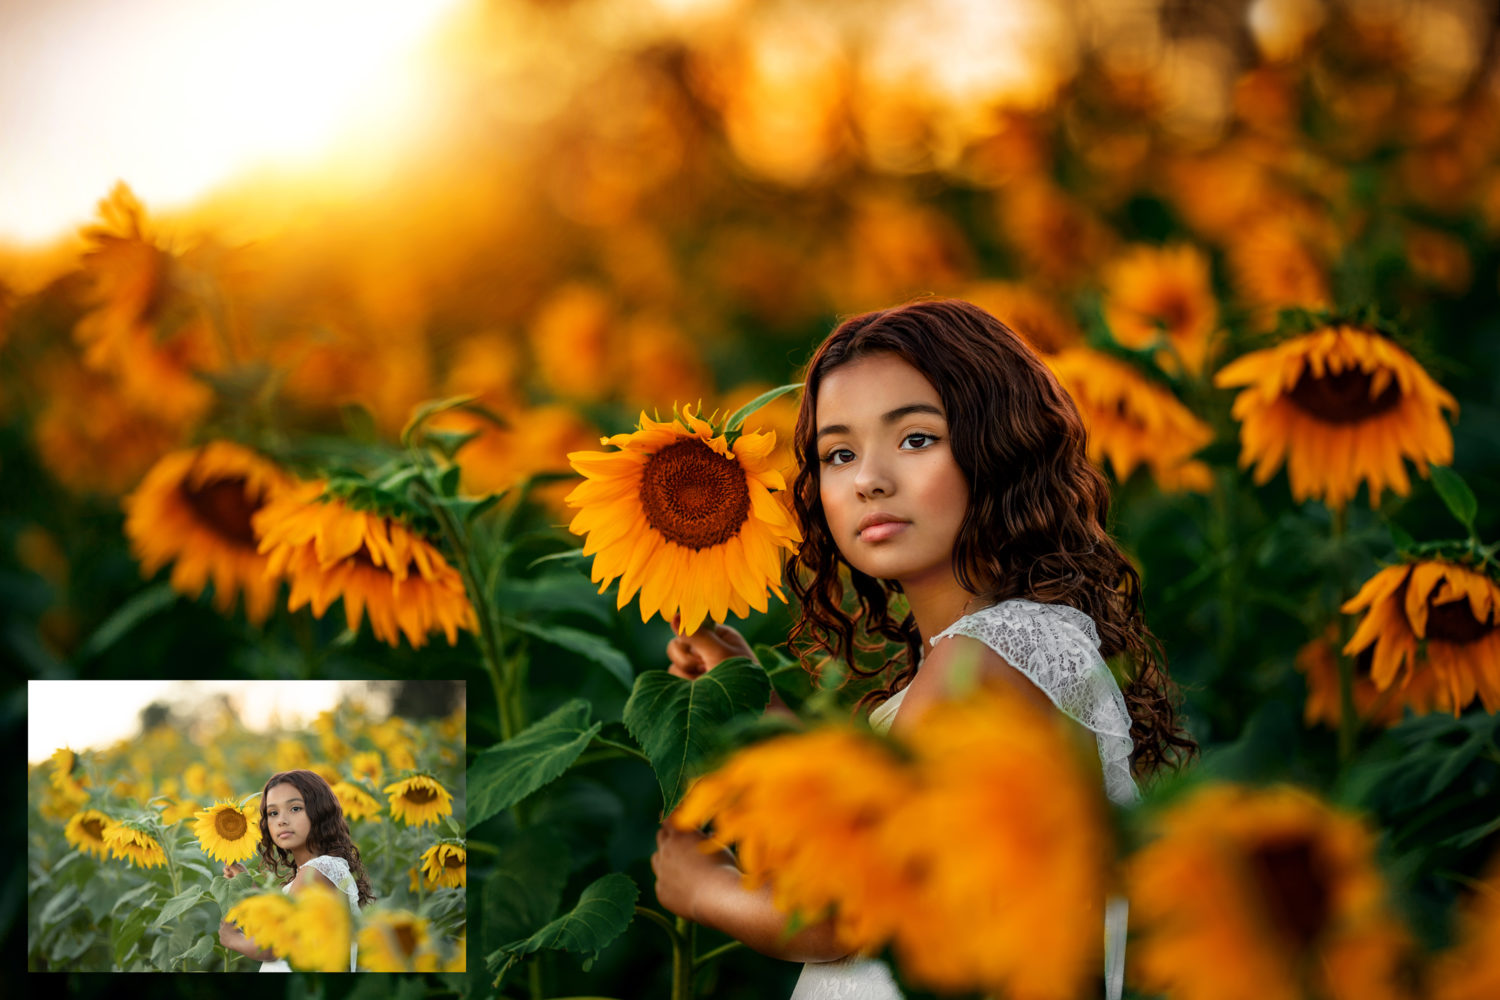 Lindsey-Lee-Photography-Editing-Workshop-for-Summerana-Photoshop-Membership-